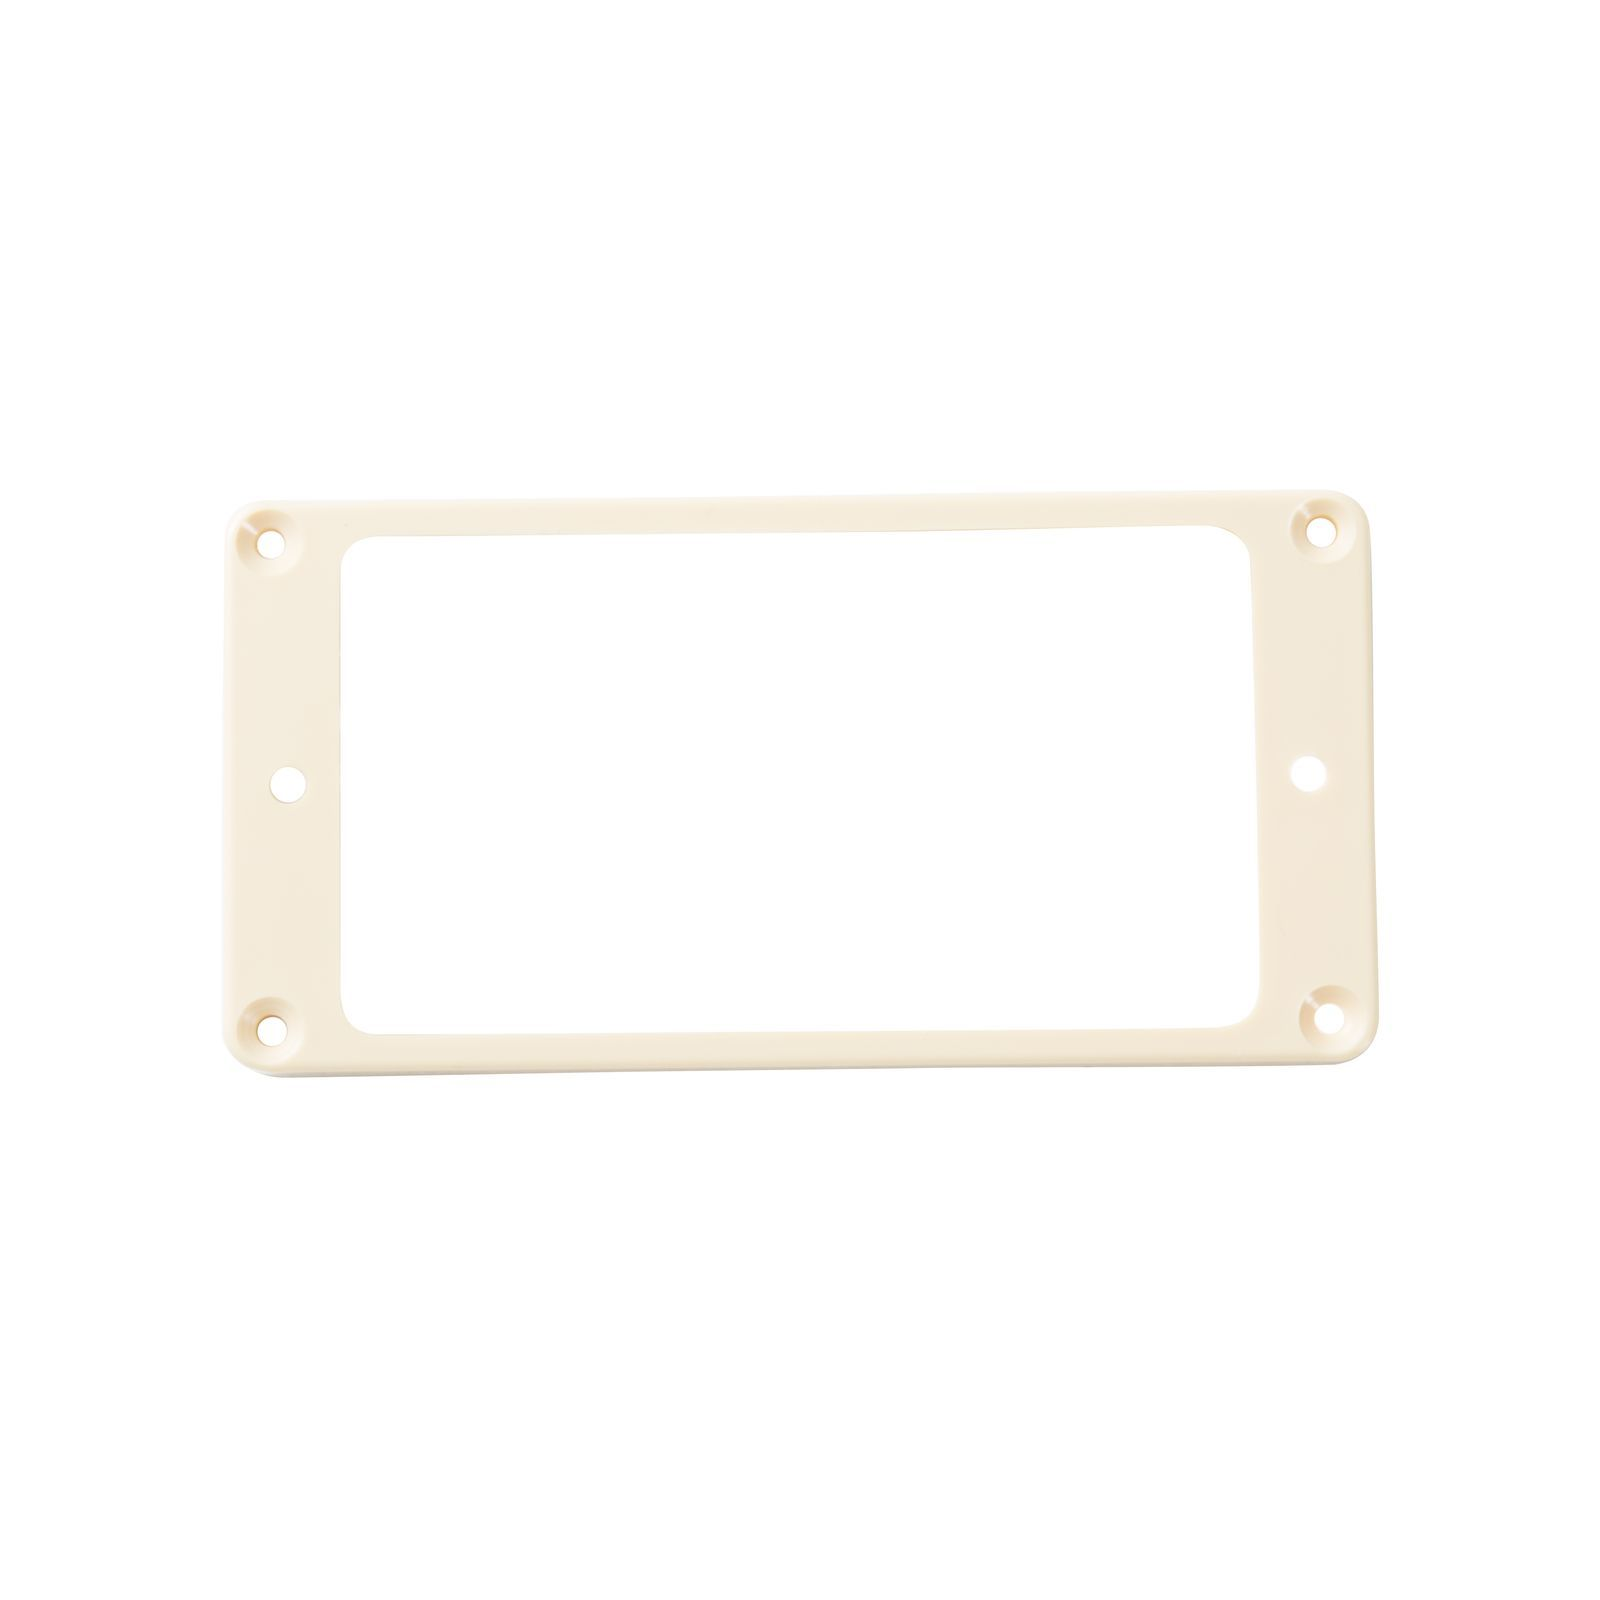 DiMarzio Humbucker Mounting Ring Bridge Cream Image du produit